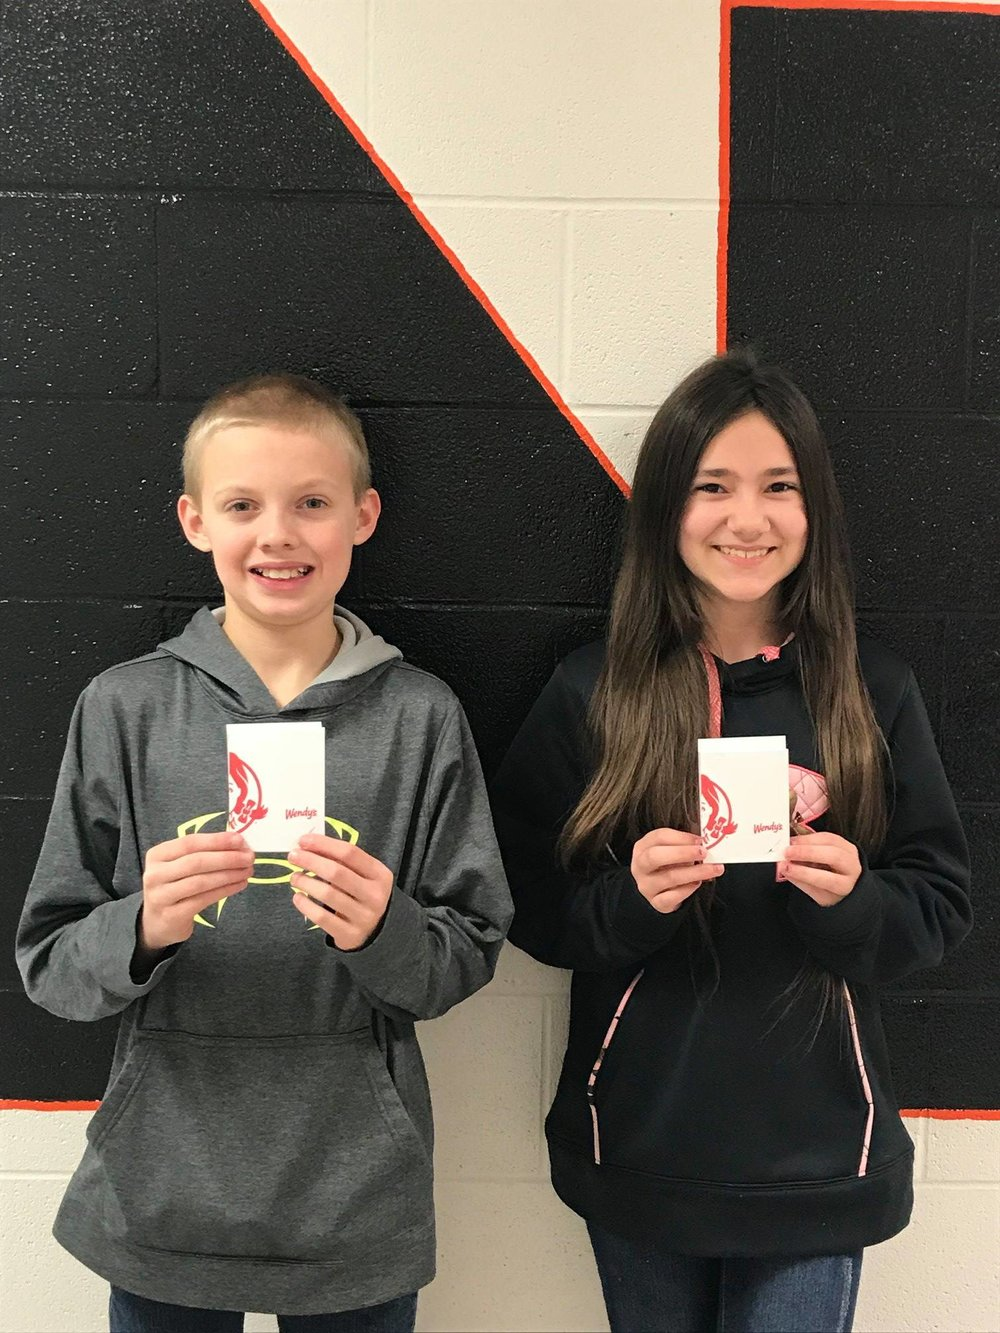 They were the winners of Wendy's Gift Cards after their names were drawn from 6th-grade students who had Perfect Attendance for the second 9 Weeks.